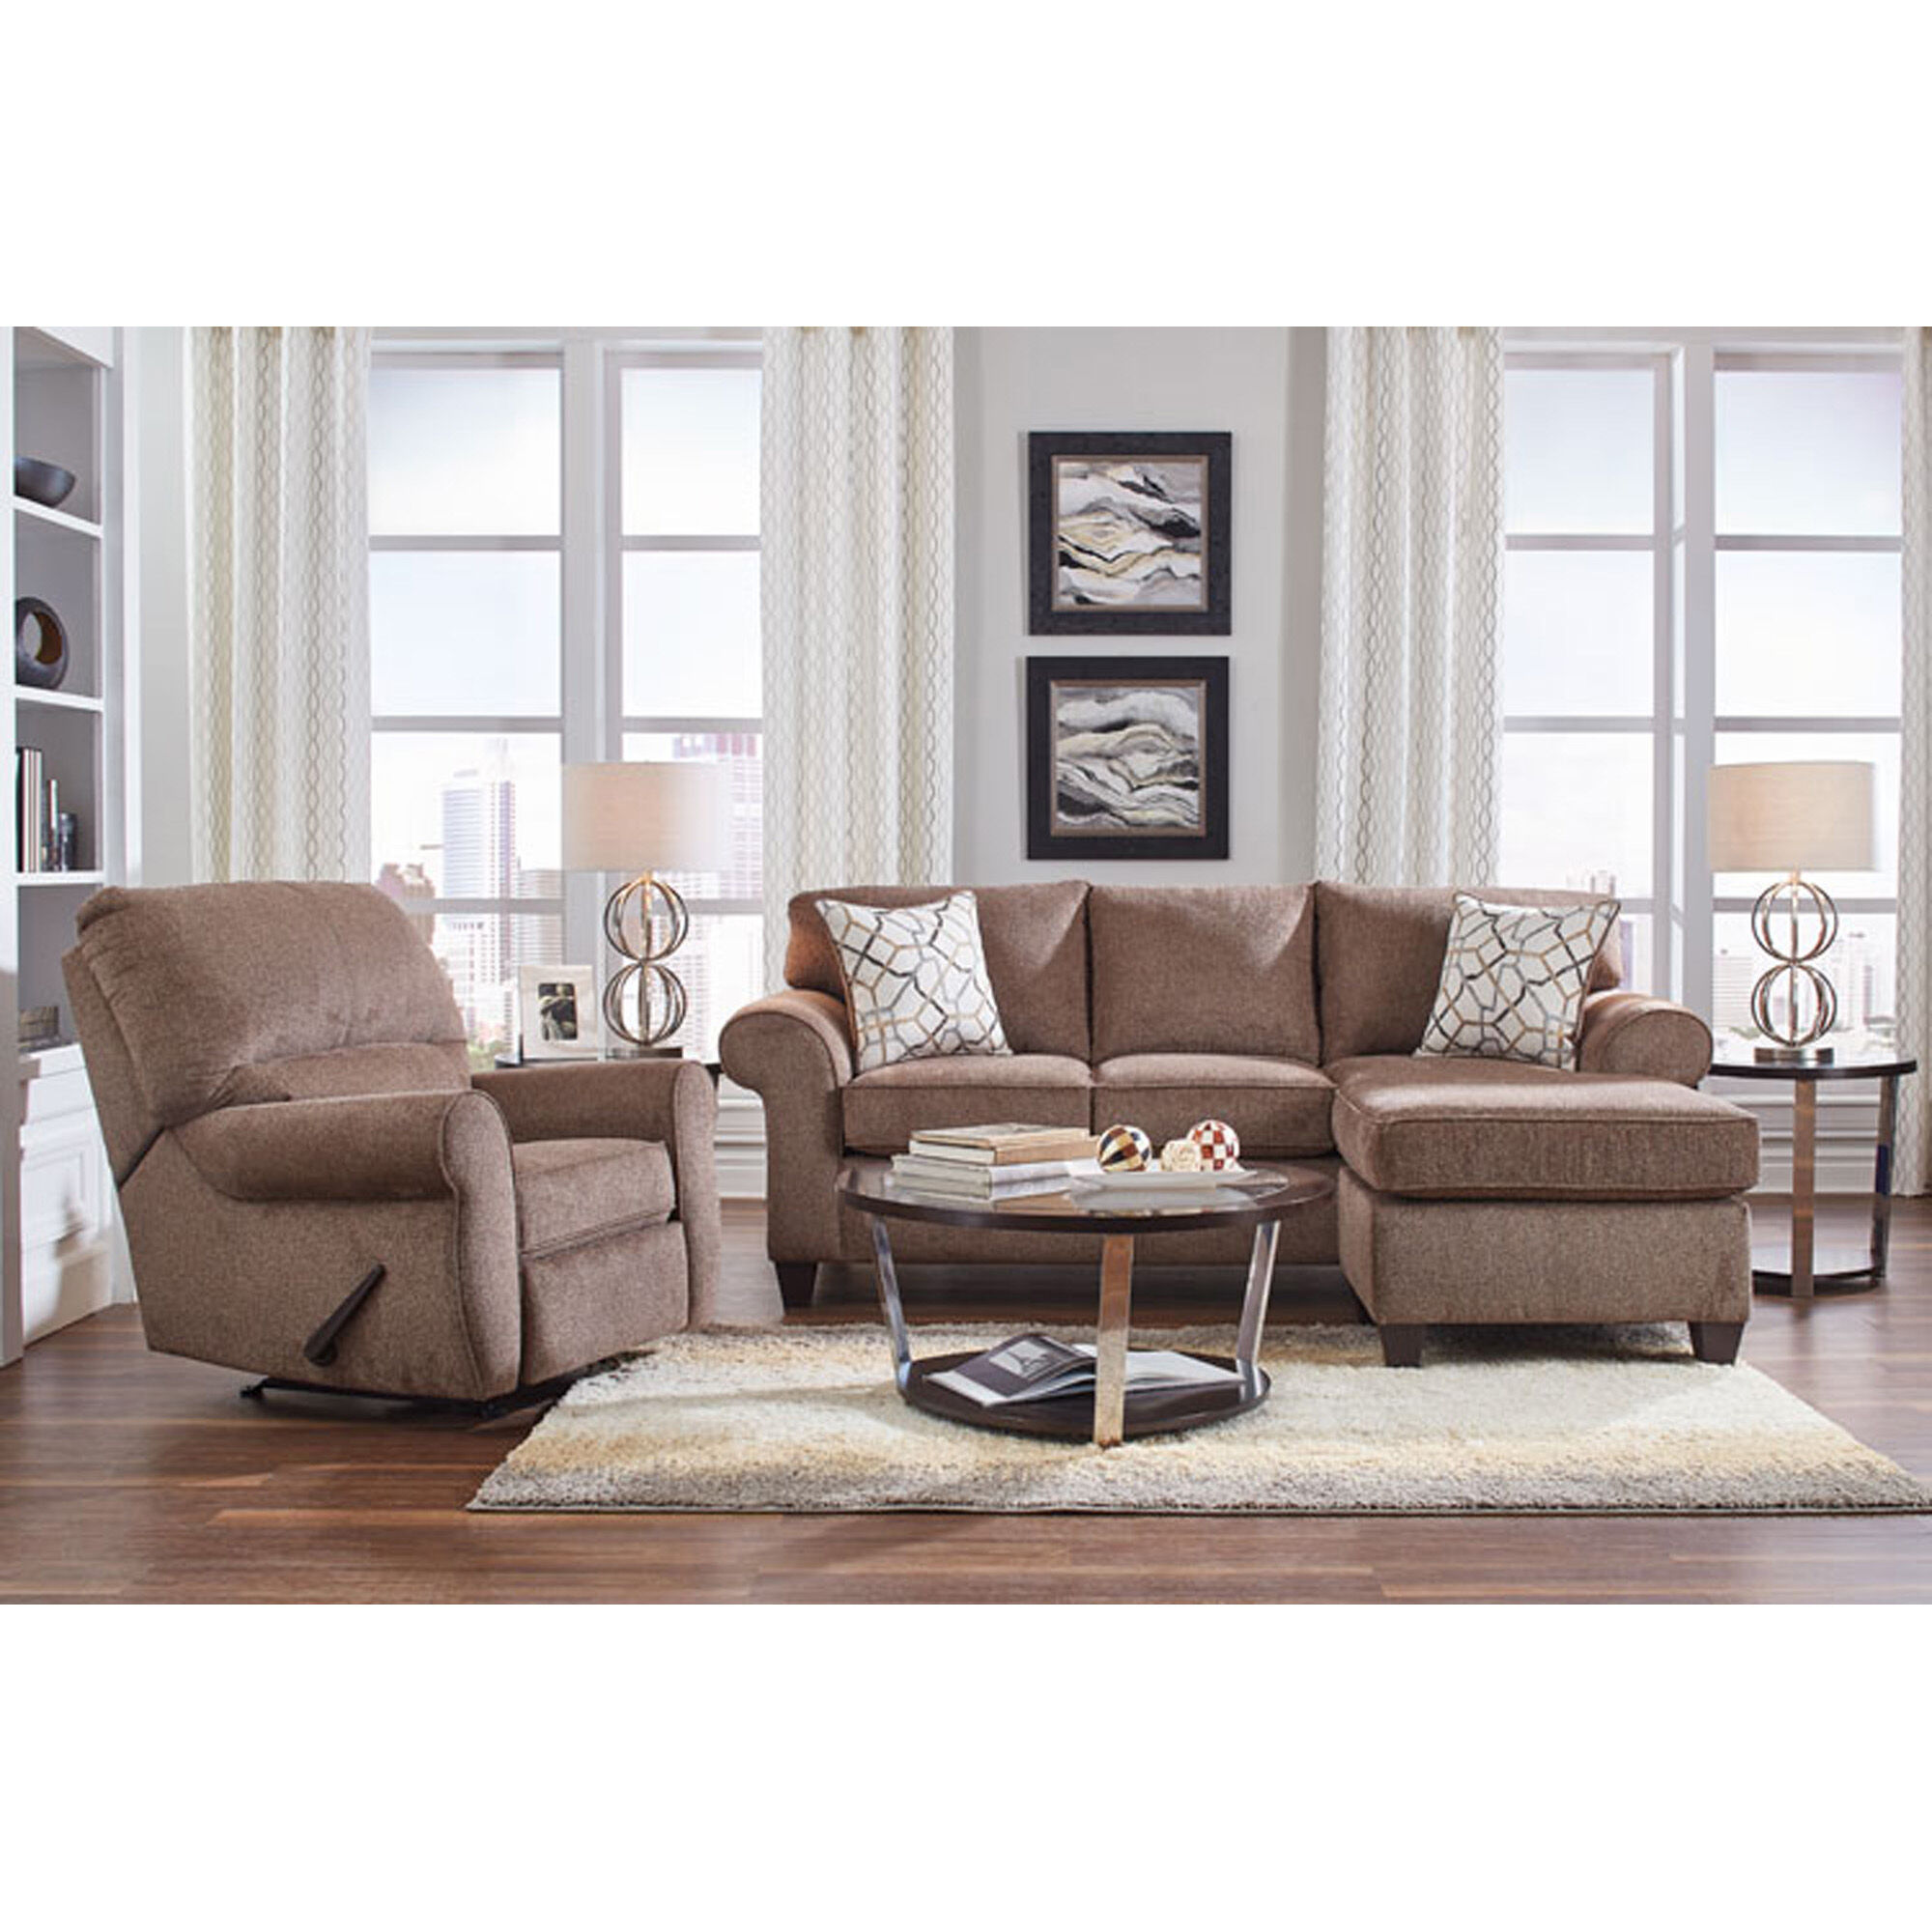 Great 7 Piece Hayley Living Room Collection